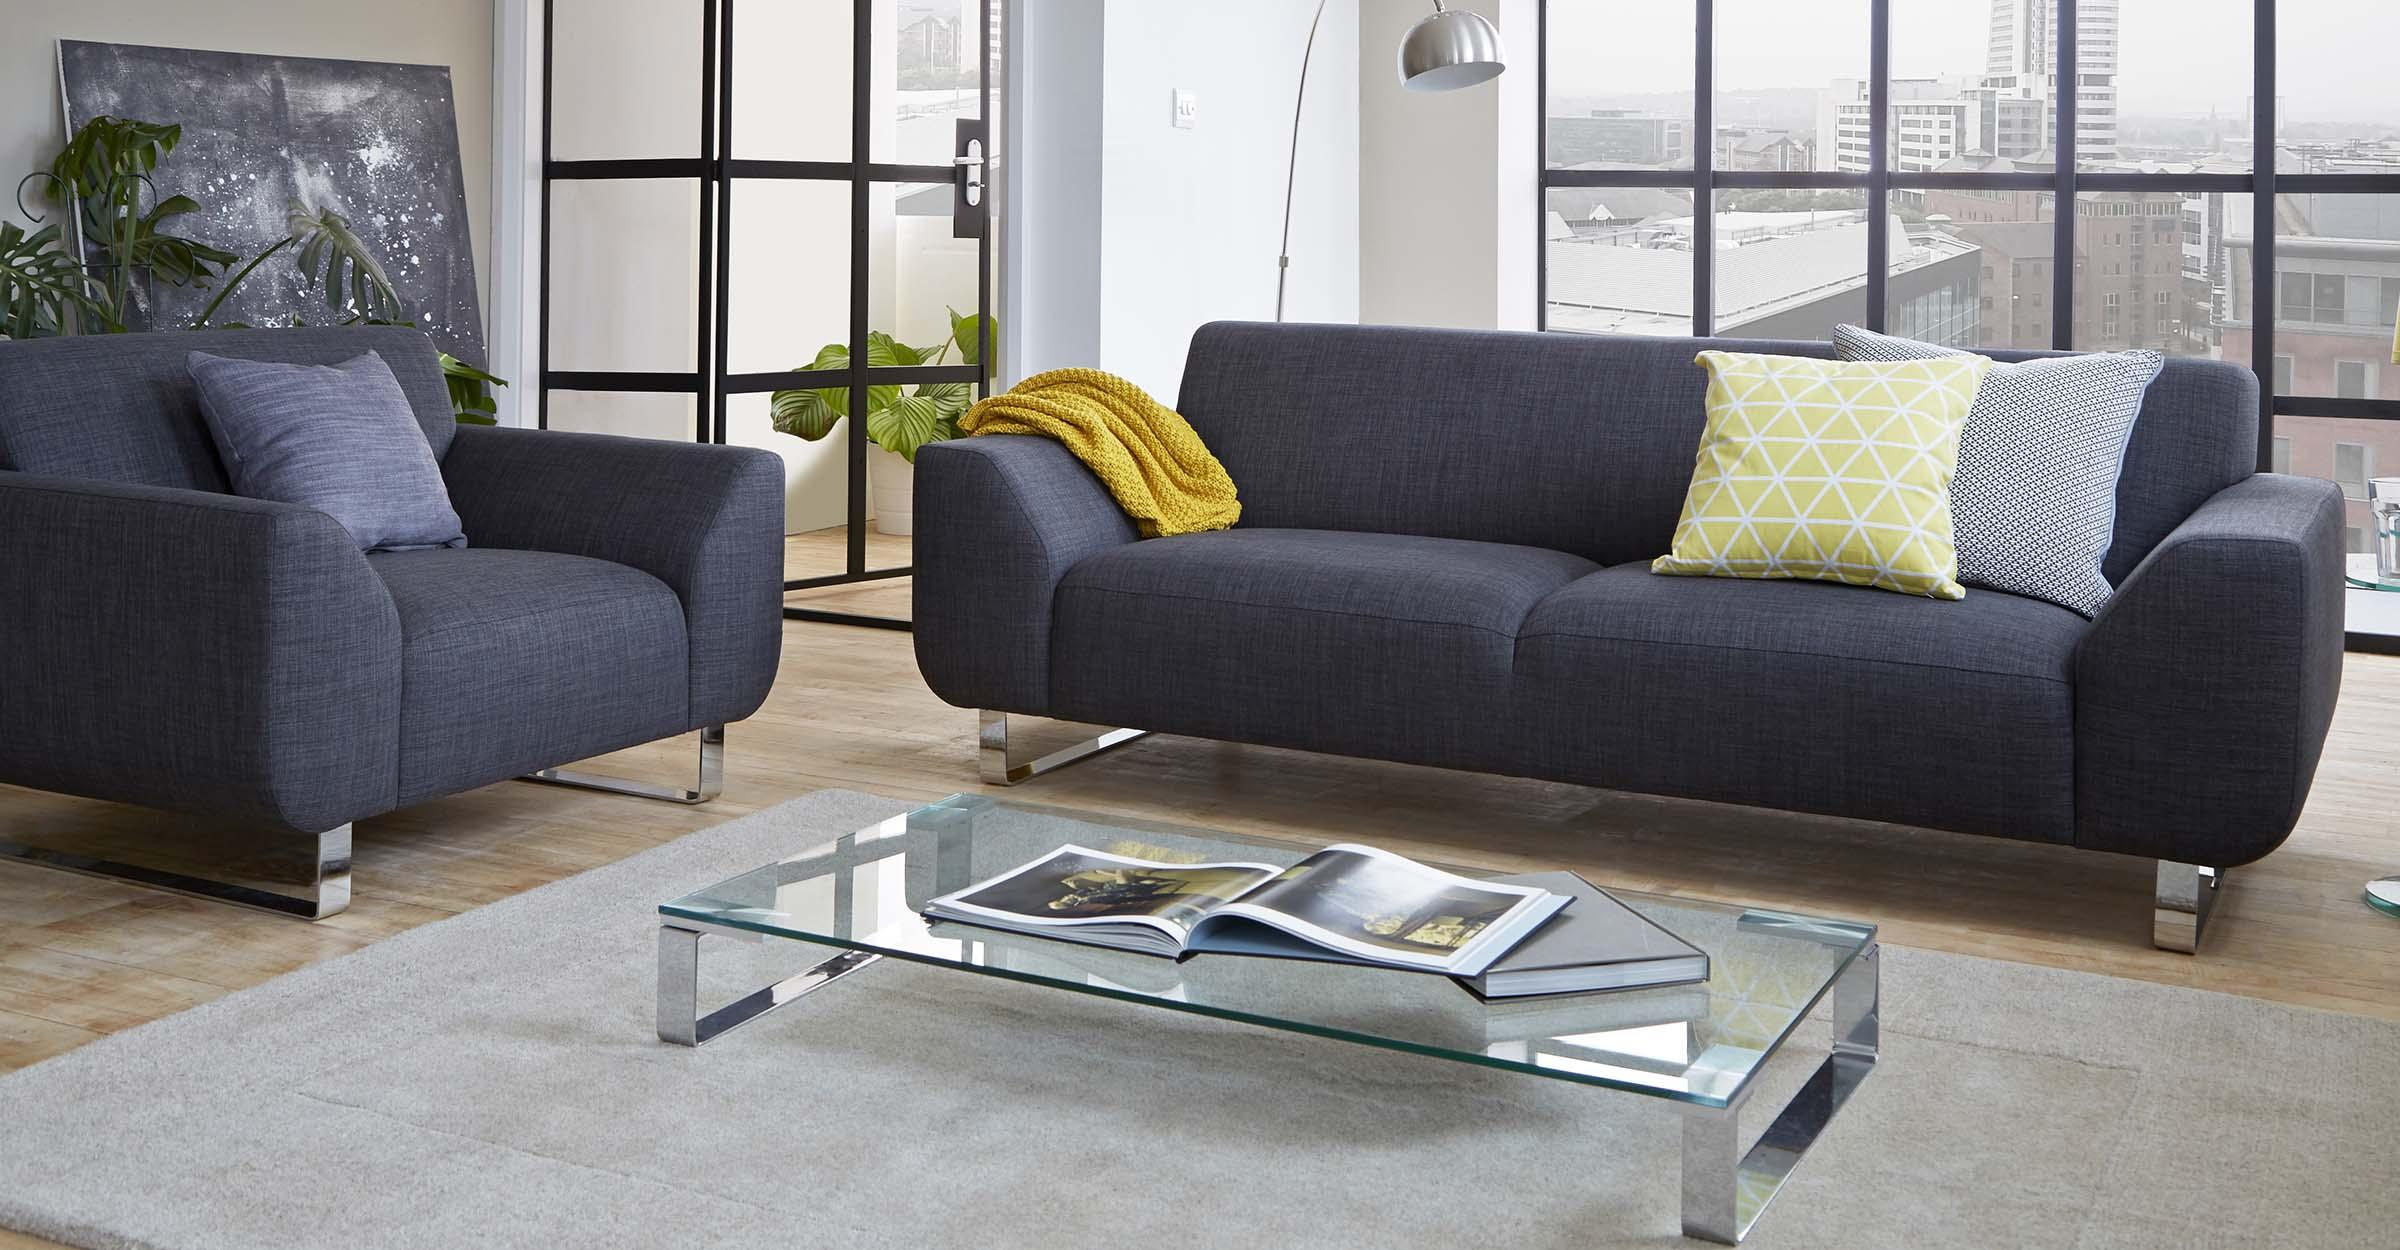 The Contemporary sofa